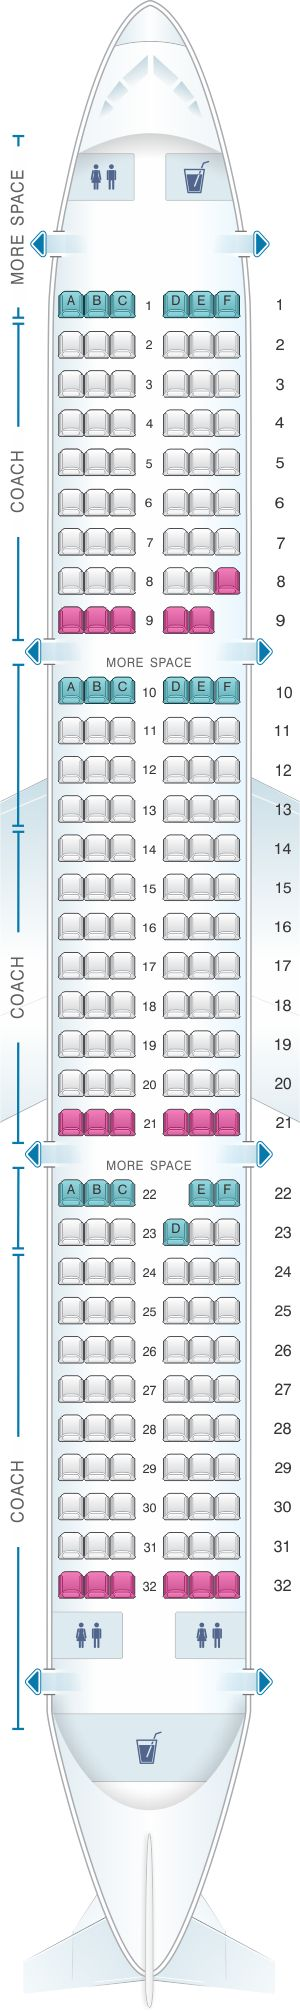 Seat Map JetBlue Airways Airbus A321 Config 1 | Air ...